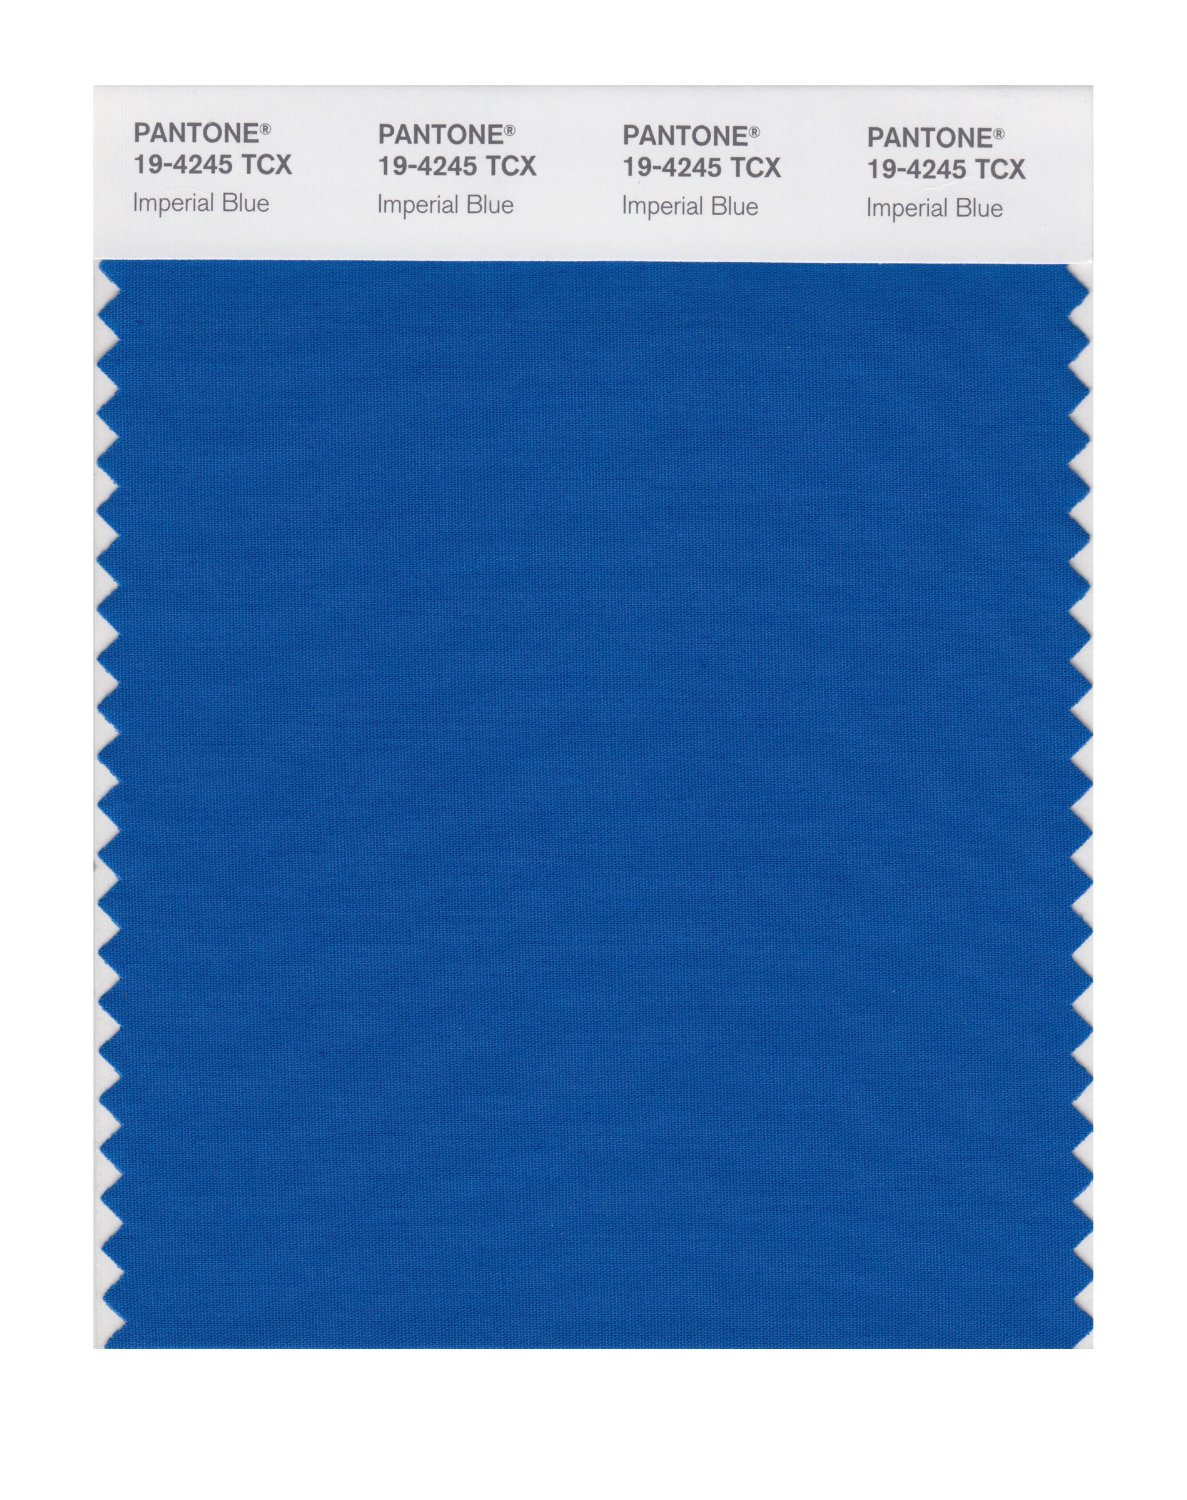 Pantone Smart Swatch 19-4245 Imperial Blue